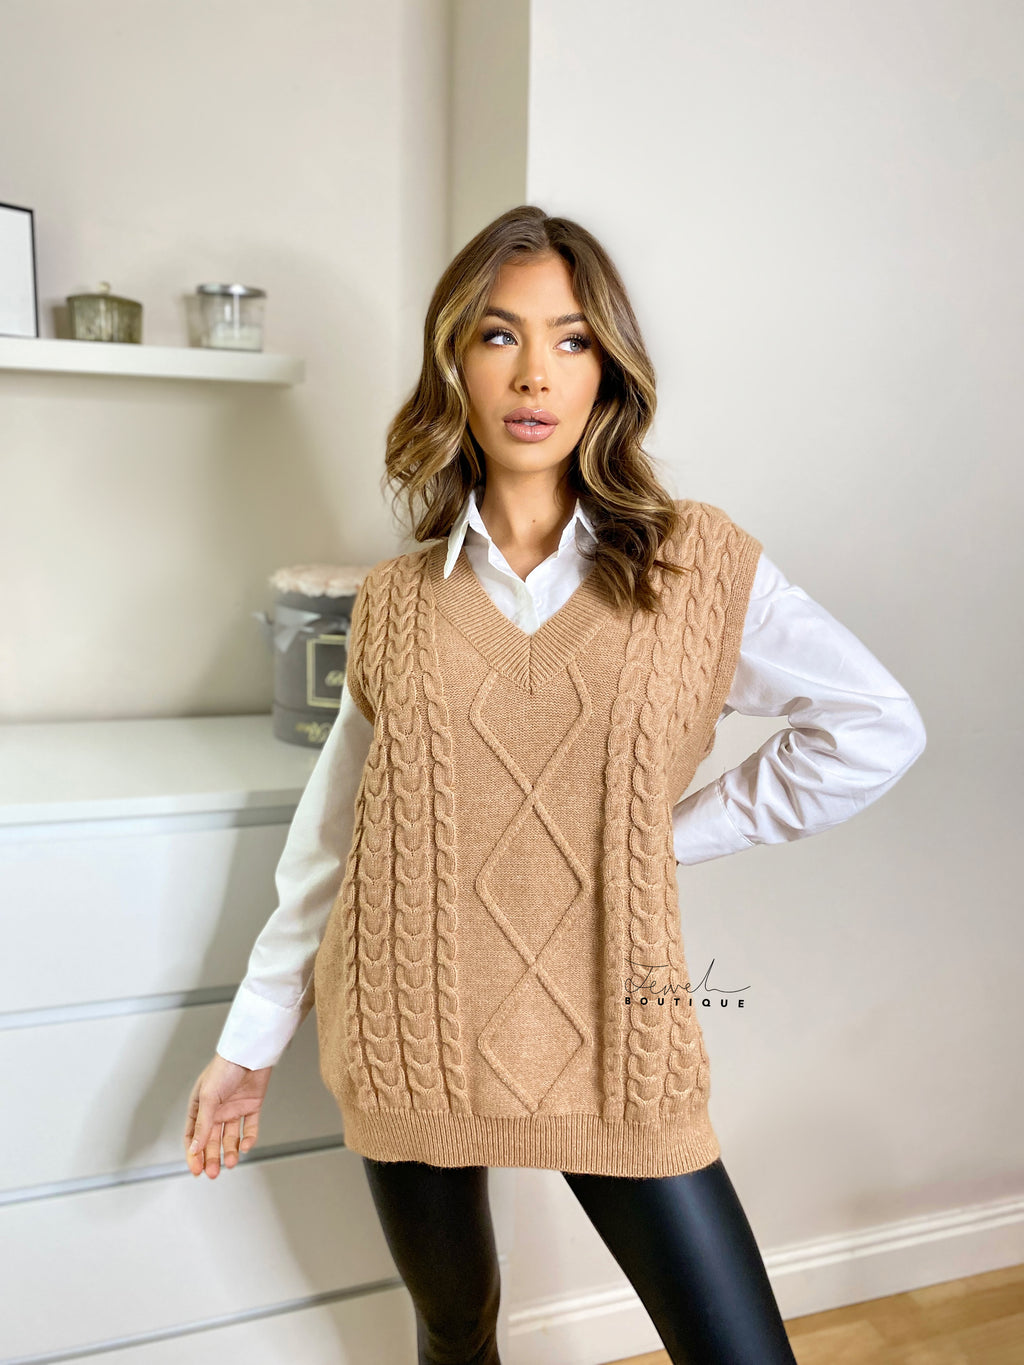 Women's stylish mocha cable knit sleeveless vest and white oversized shirt set